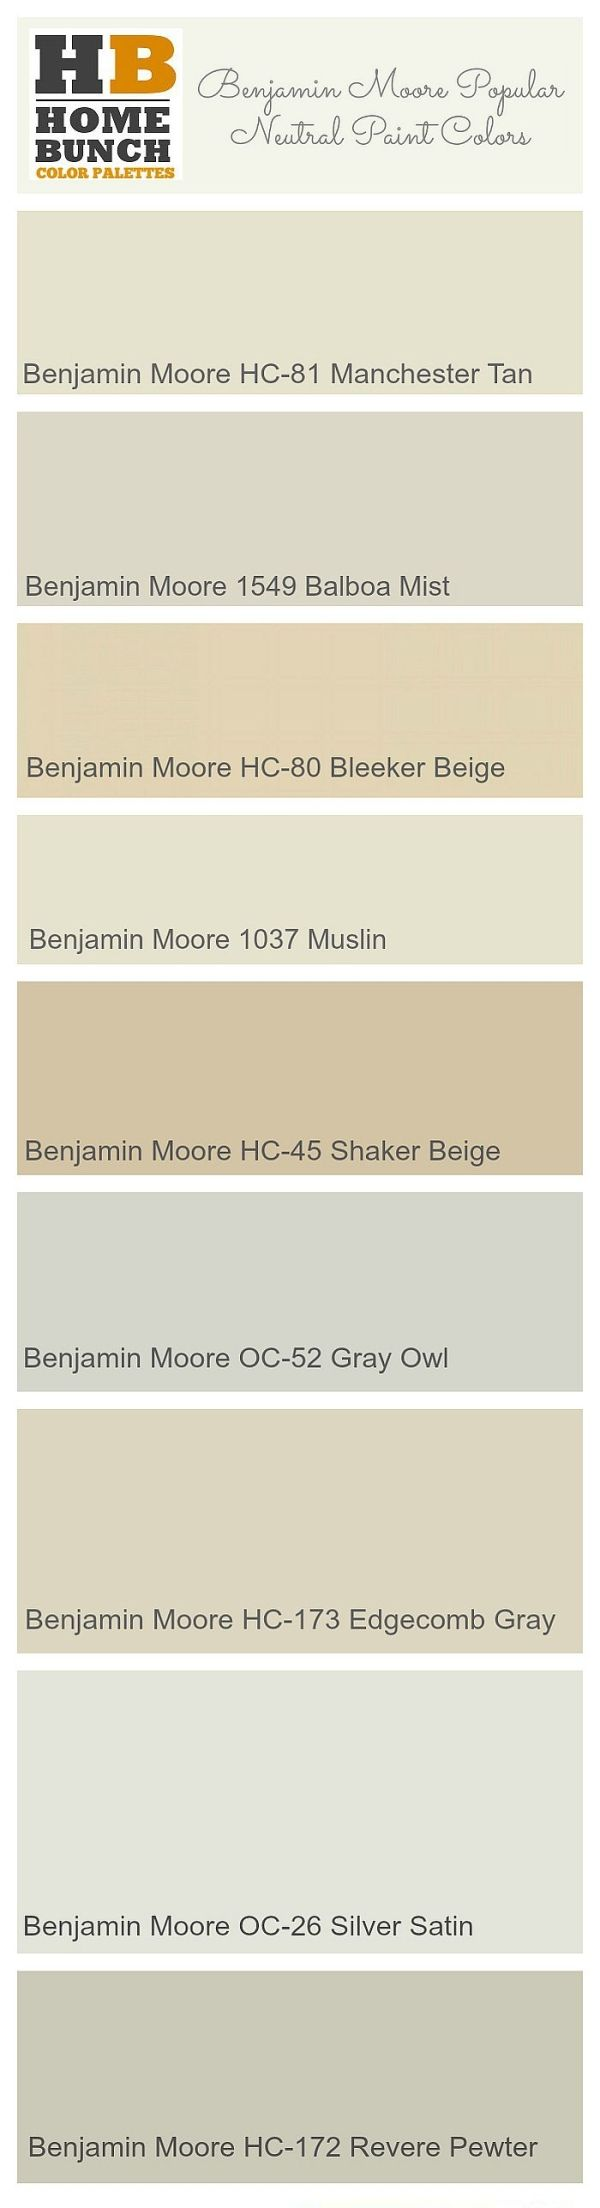 Benjamin moore popular neutral paint colors benjamin for Top neutral paint colors